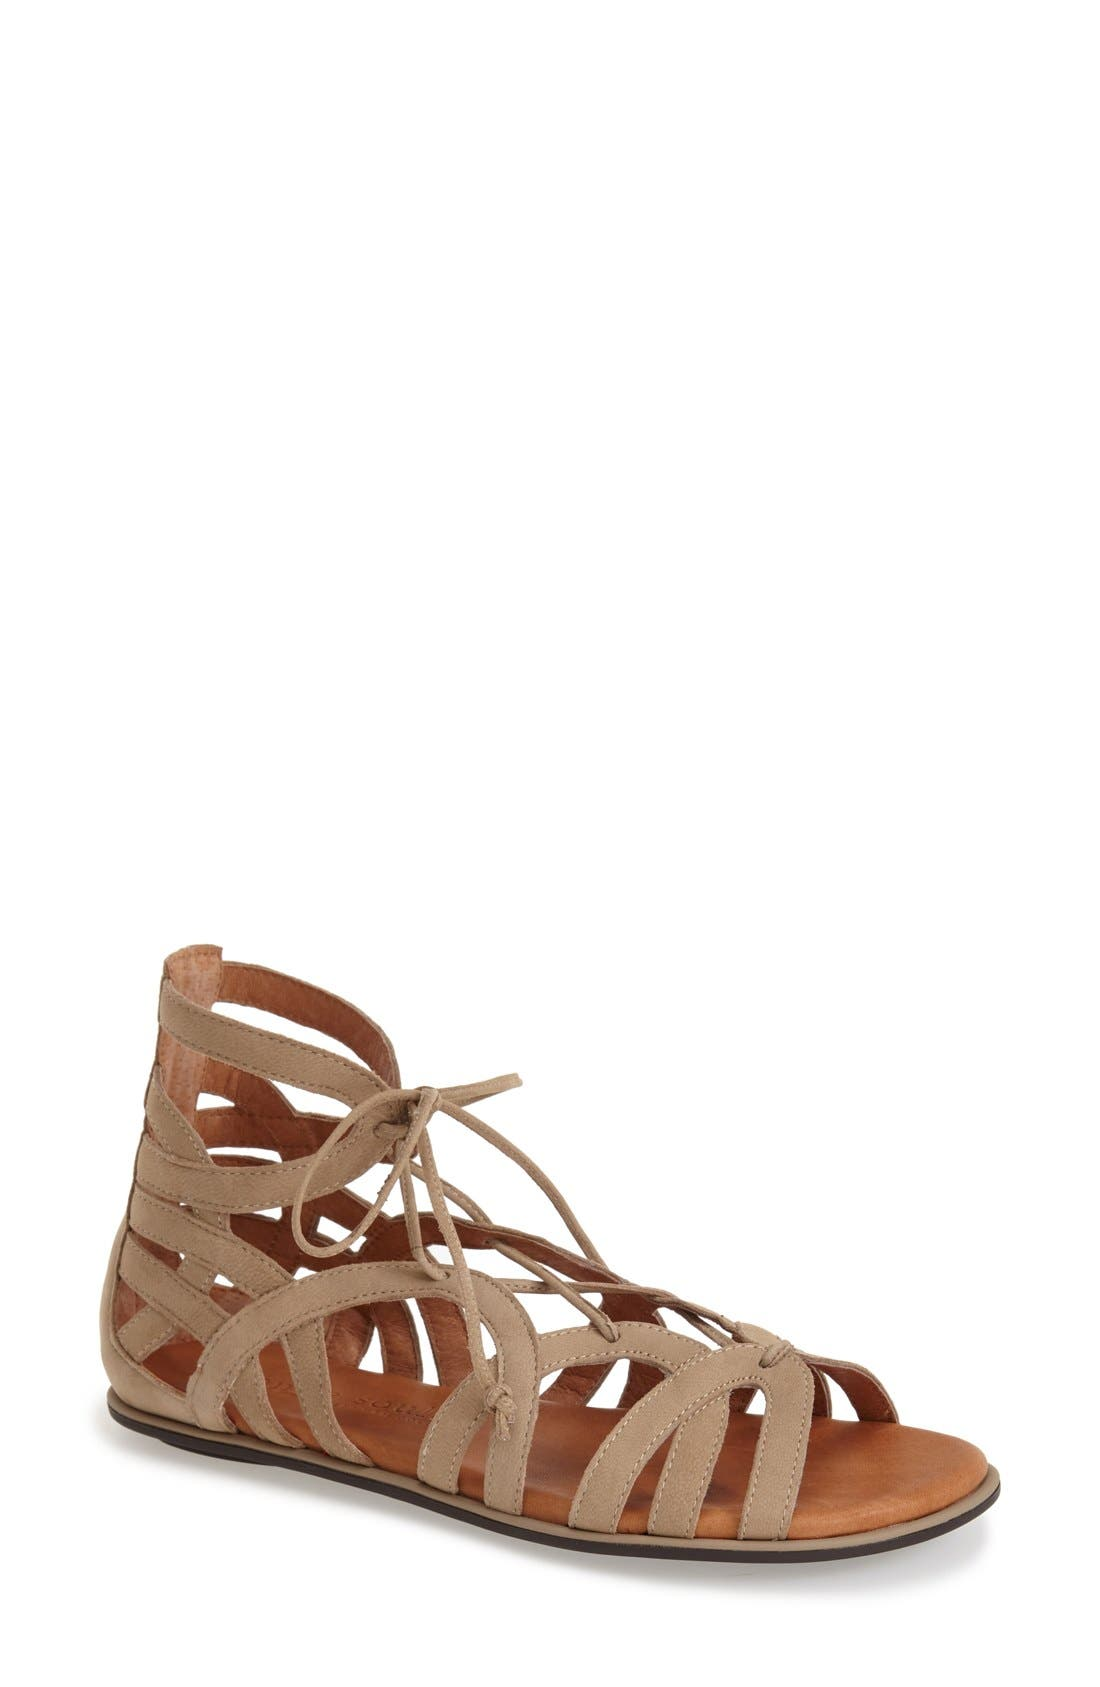 GENTLE SOULS BY KENNETH COLE, 'Break My Heart 3' Cage Sandal, Main thumbnail 1, color, TAUPE SUEDE